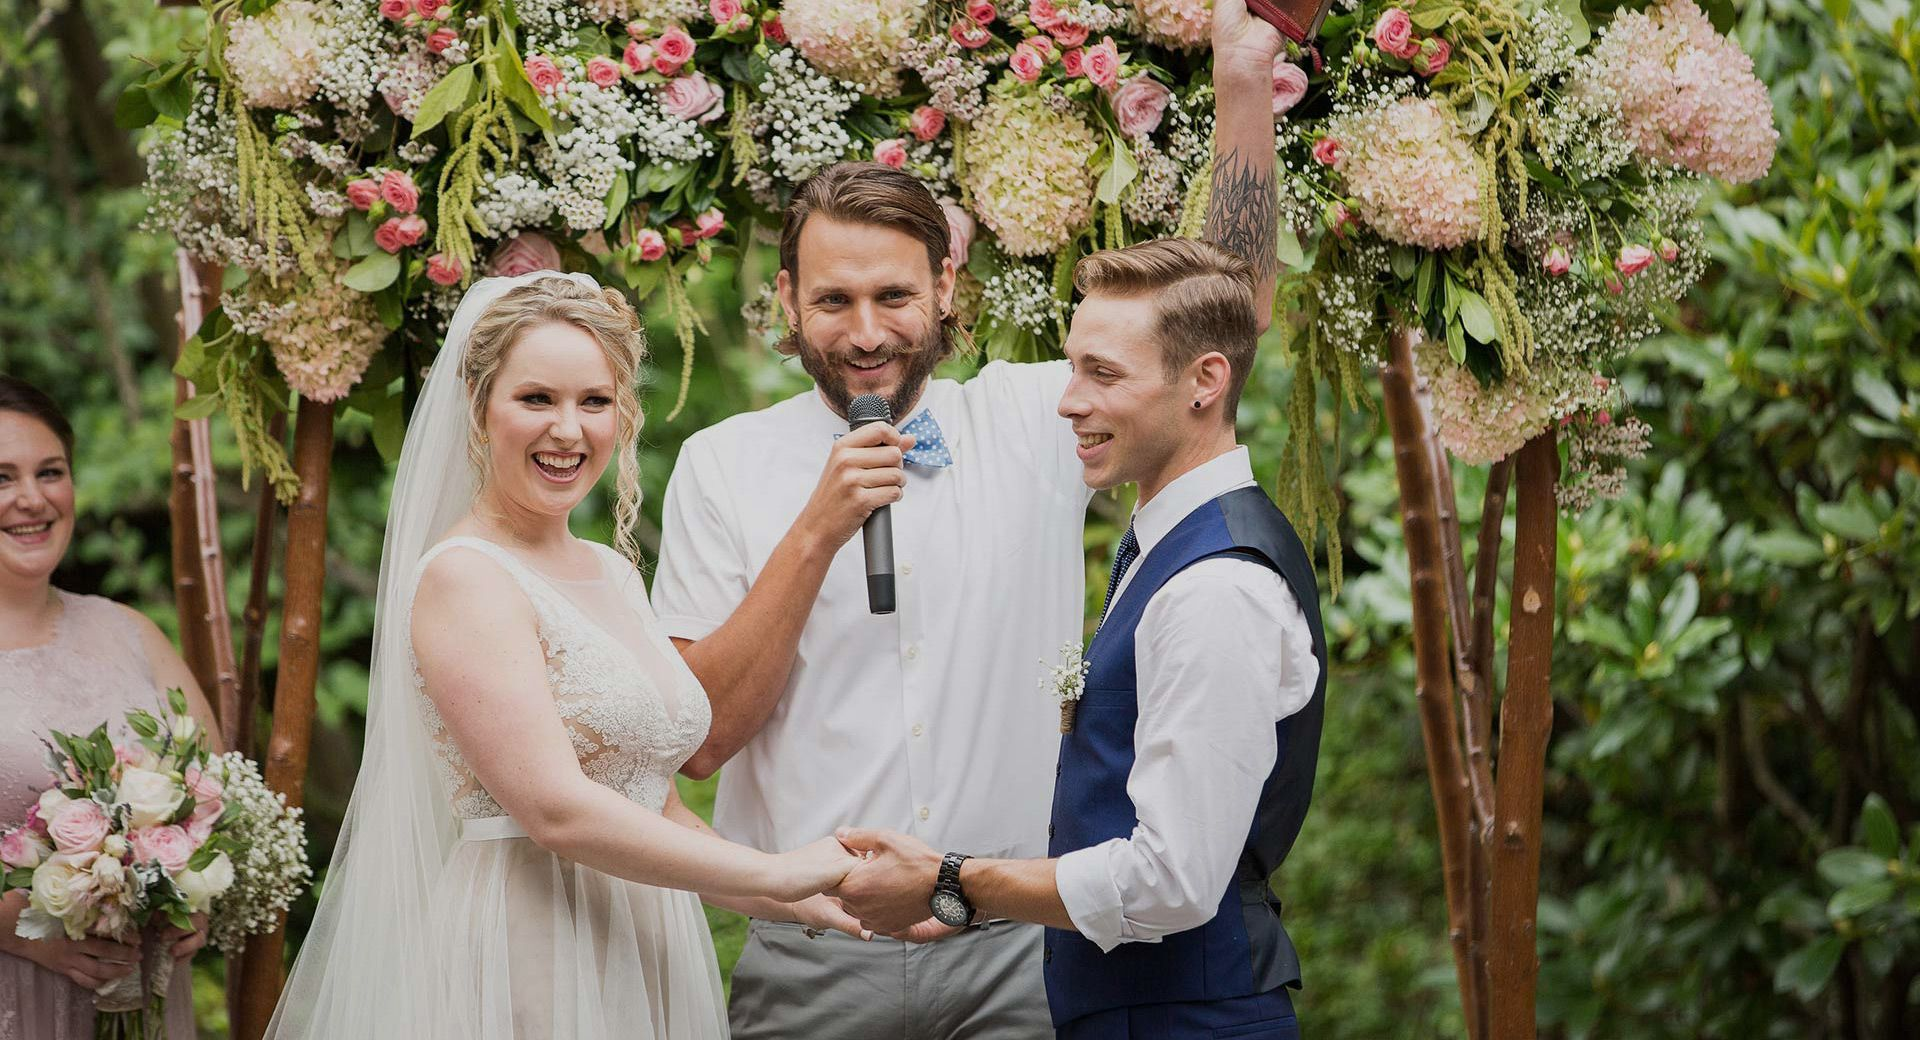 Officiants Young Hip Married Wedding Officiant Wedding Secular Wedding